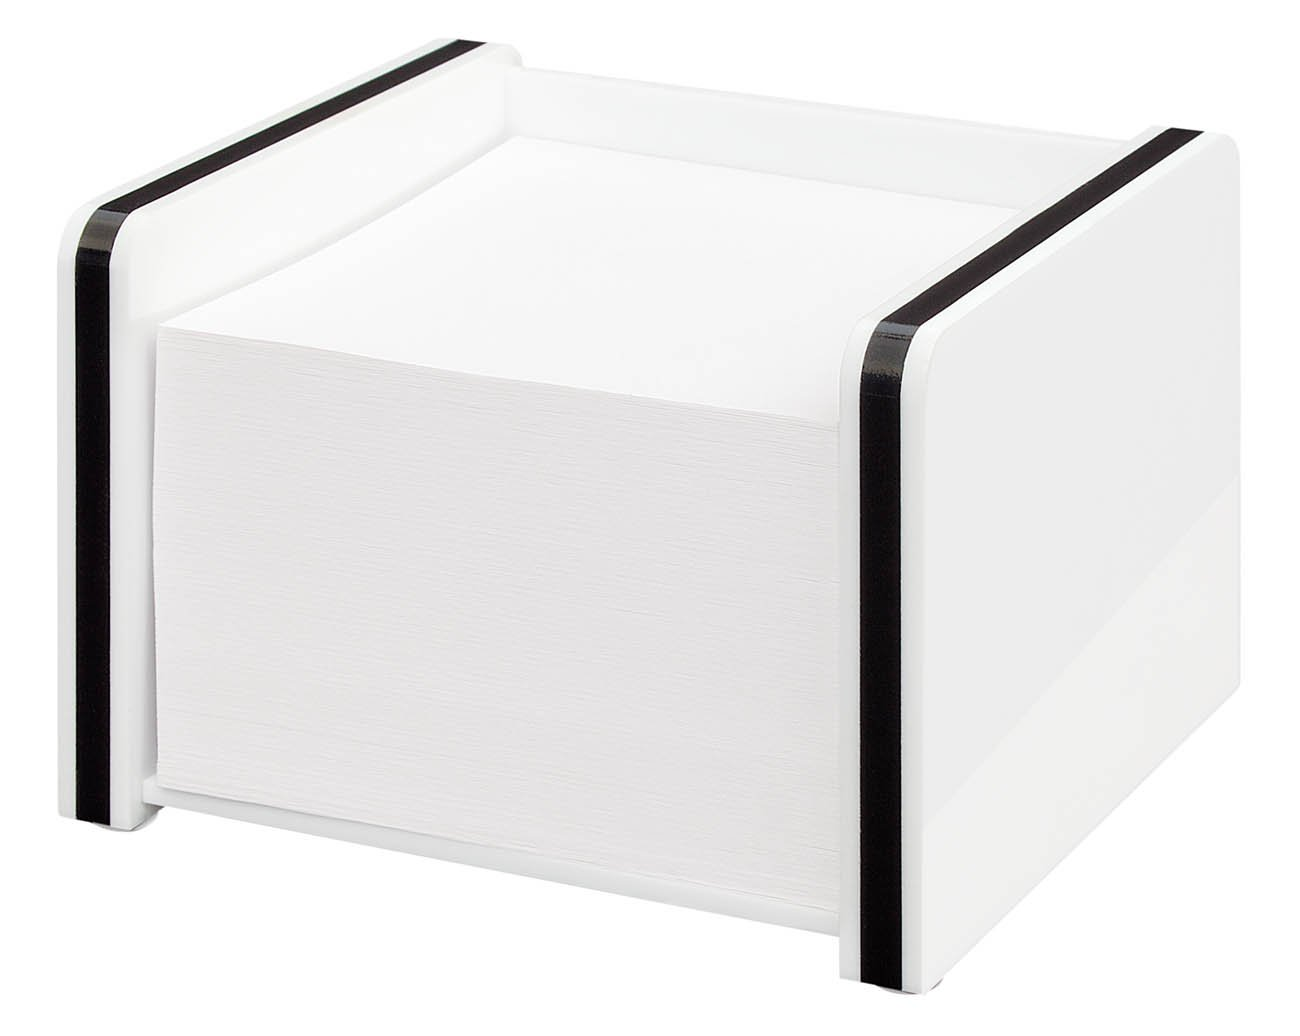 Wedo Montego 0601400 Business Card Holder Acrylic with Steel Ball//White and Black